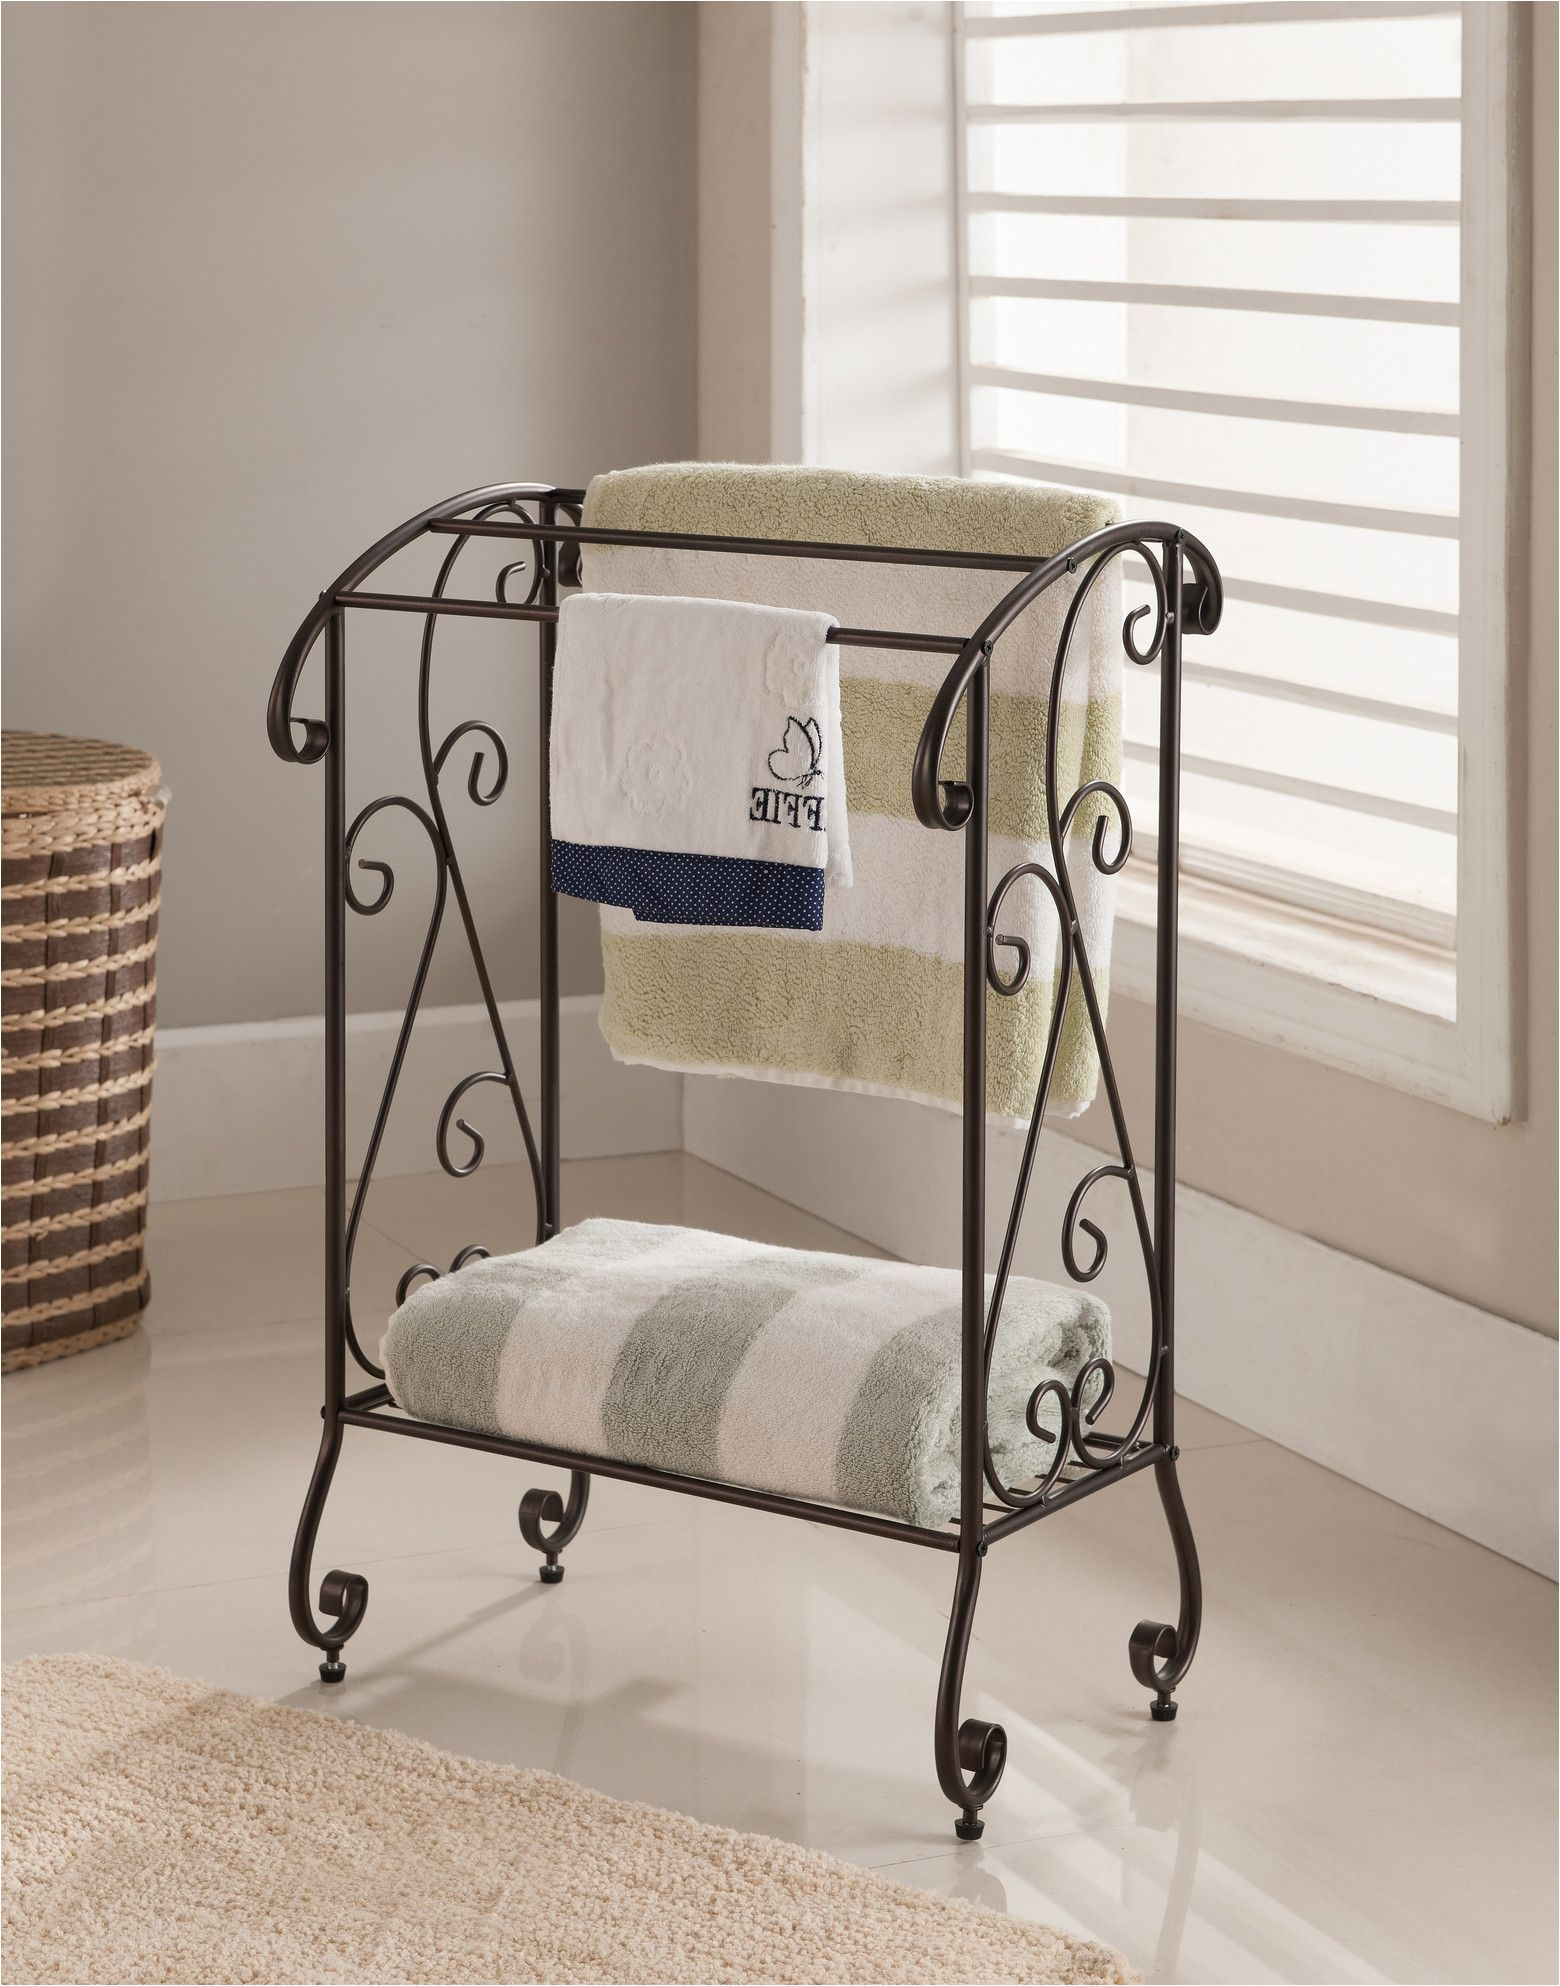 pilaster designs metal free standing towel rack stand with shelf coffee brown finish